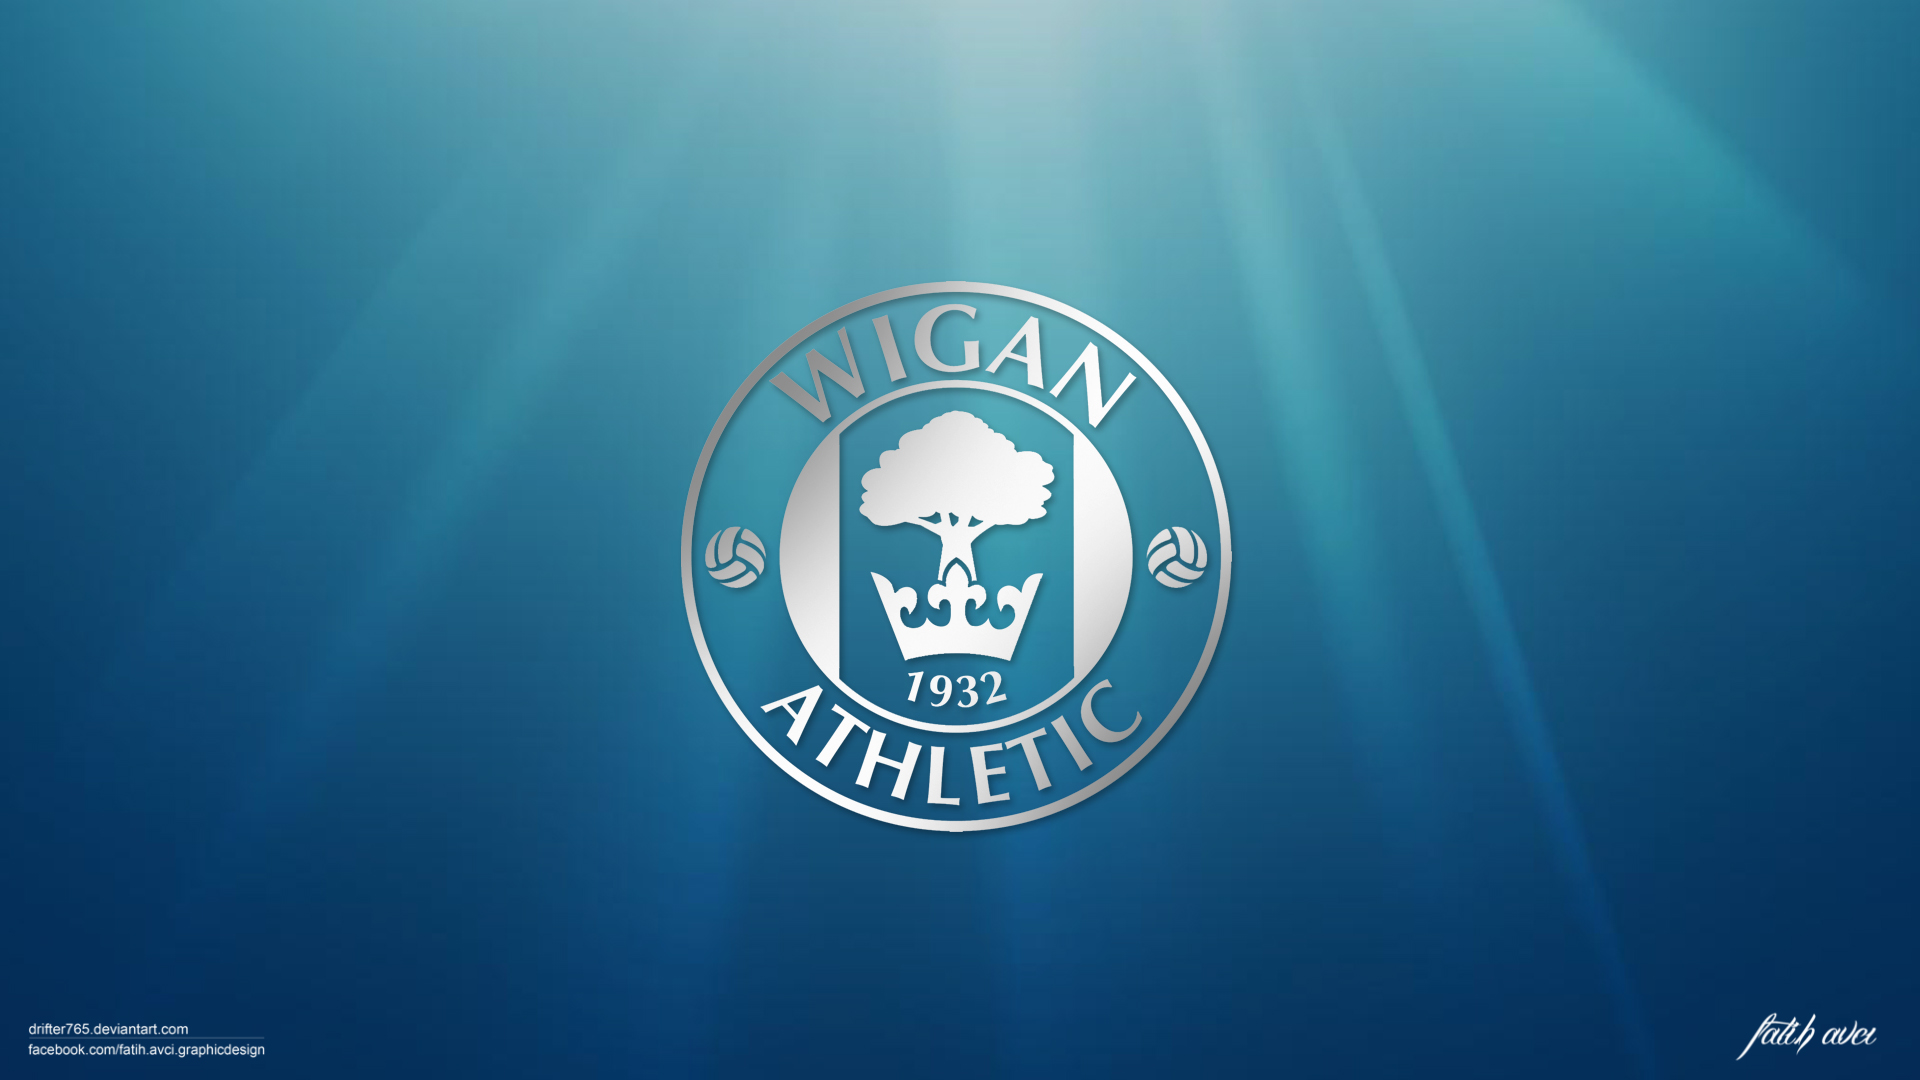 Wigan Athletic background Wigan Athletic wallpapers 1920x1080